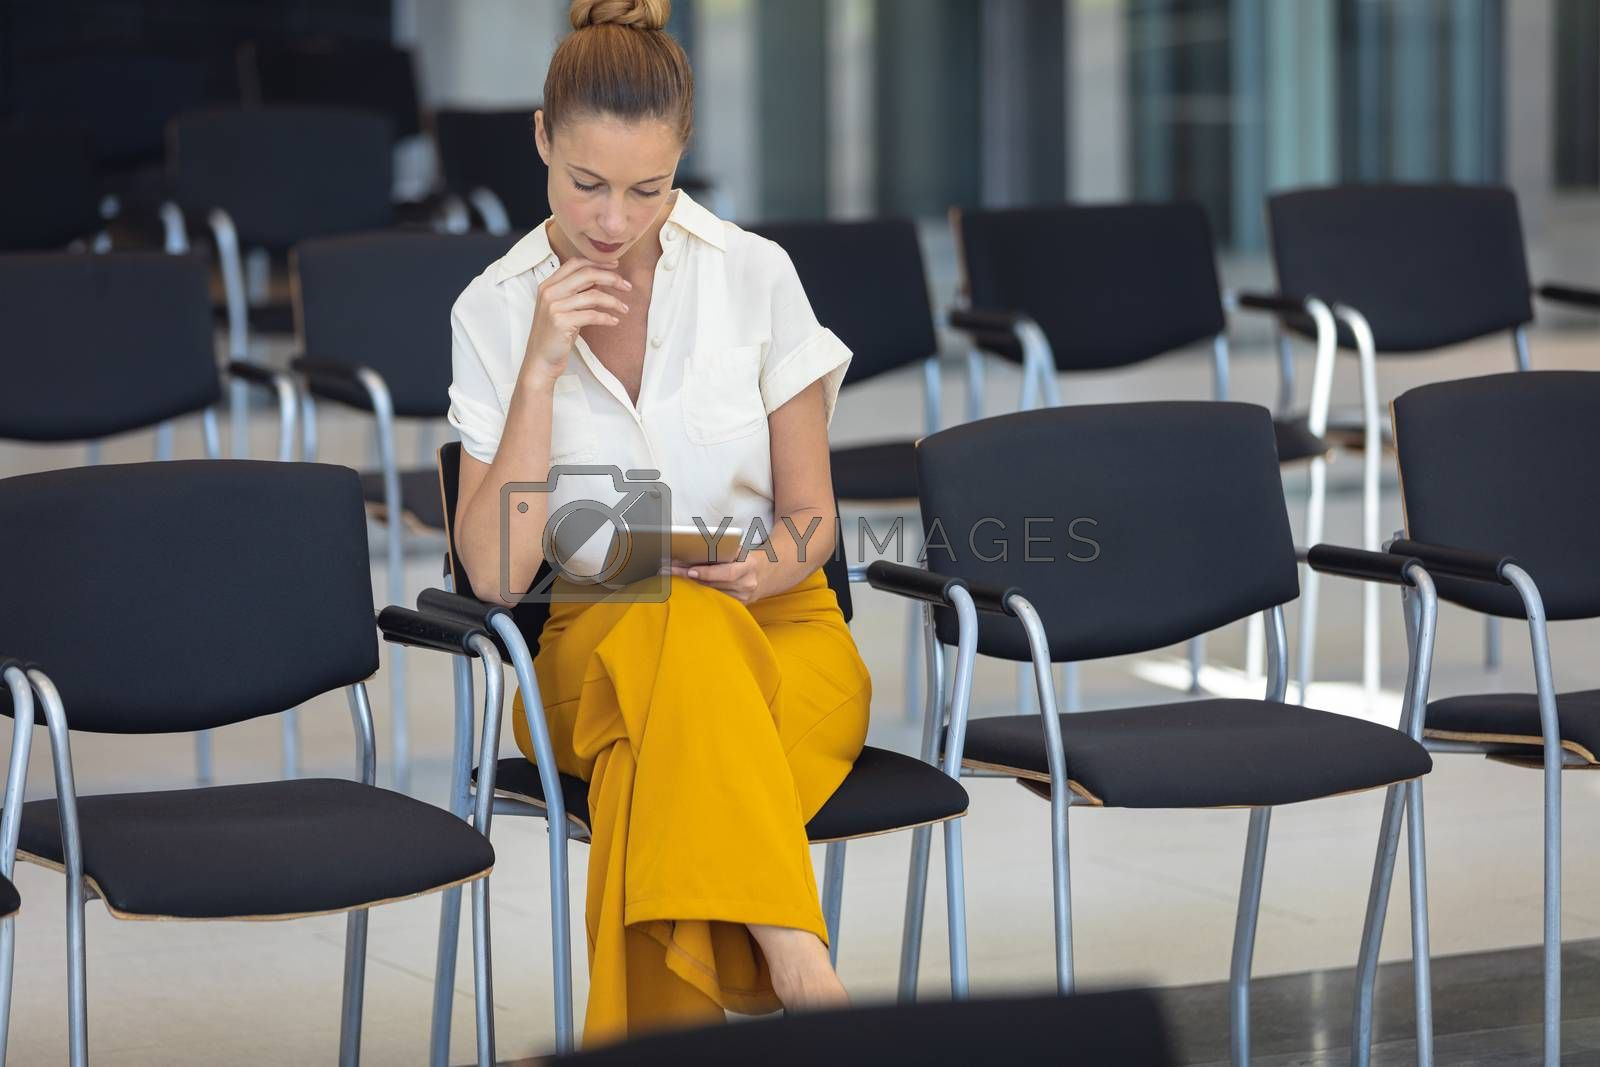 Front view of young Caucasian female executive looking at digital tablet while sitting on chair in empty conference room